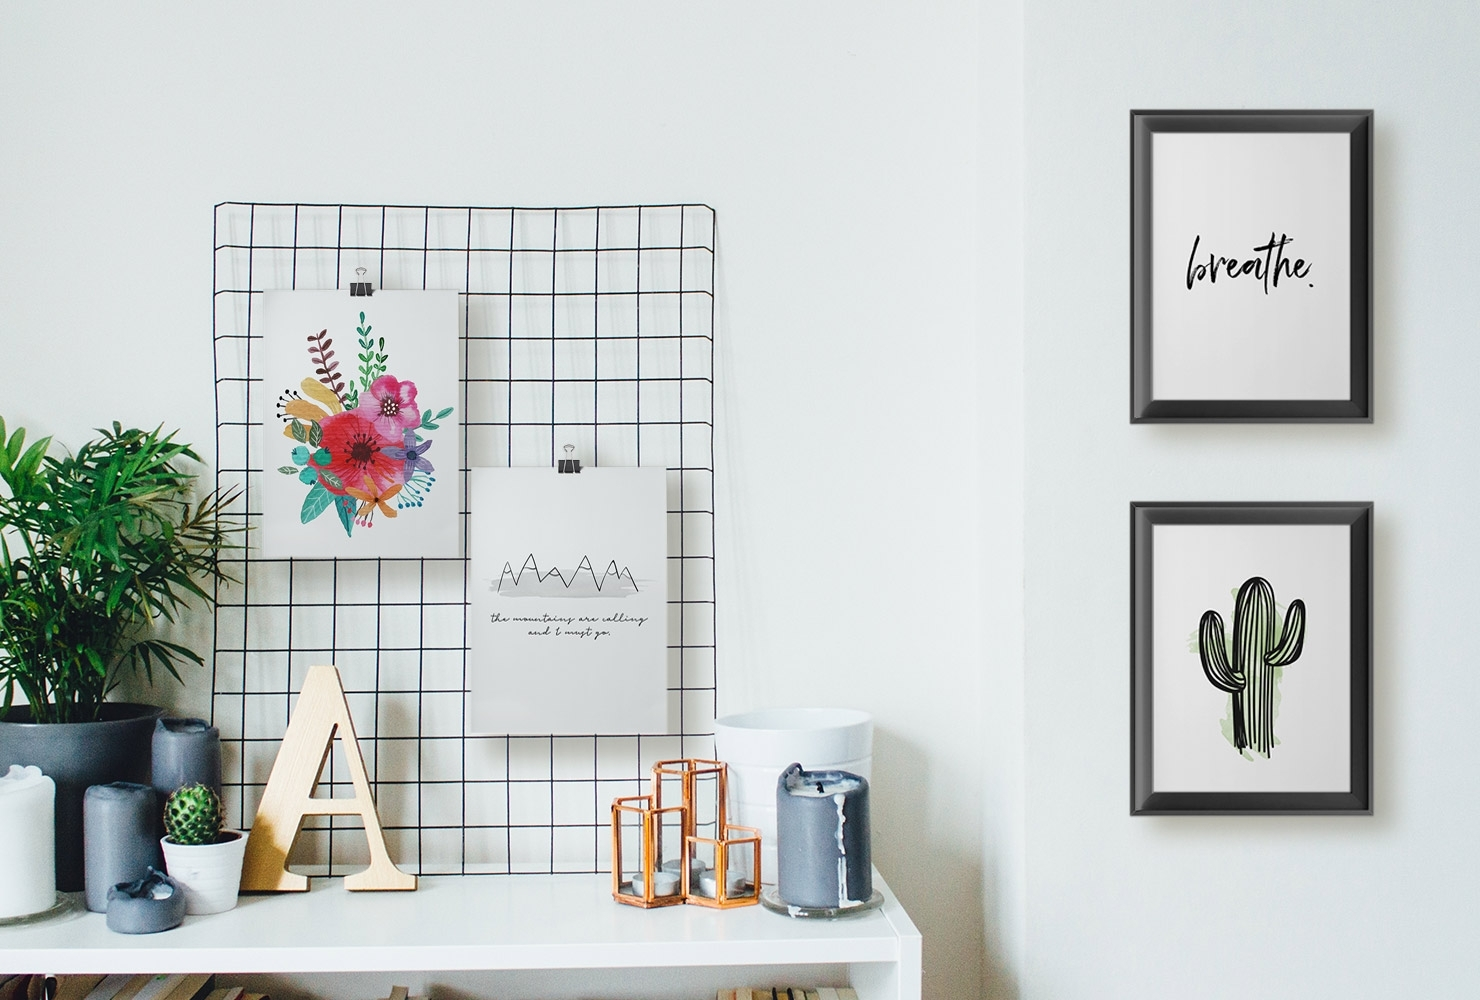 25 Unique Diy Wall Art Ideas (with Printables) | Shutterfly With Regard To Newest Unique Wall Art (View 9 of 15)